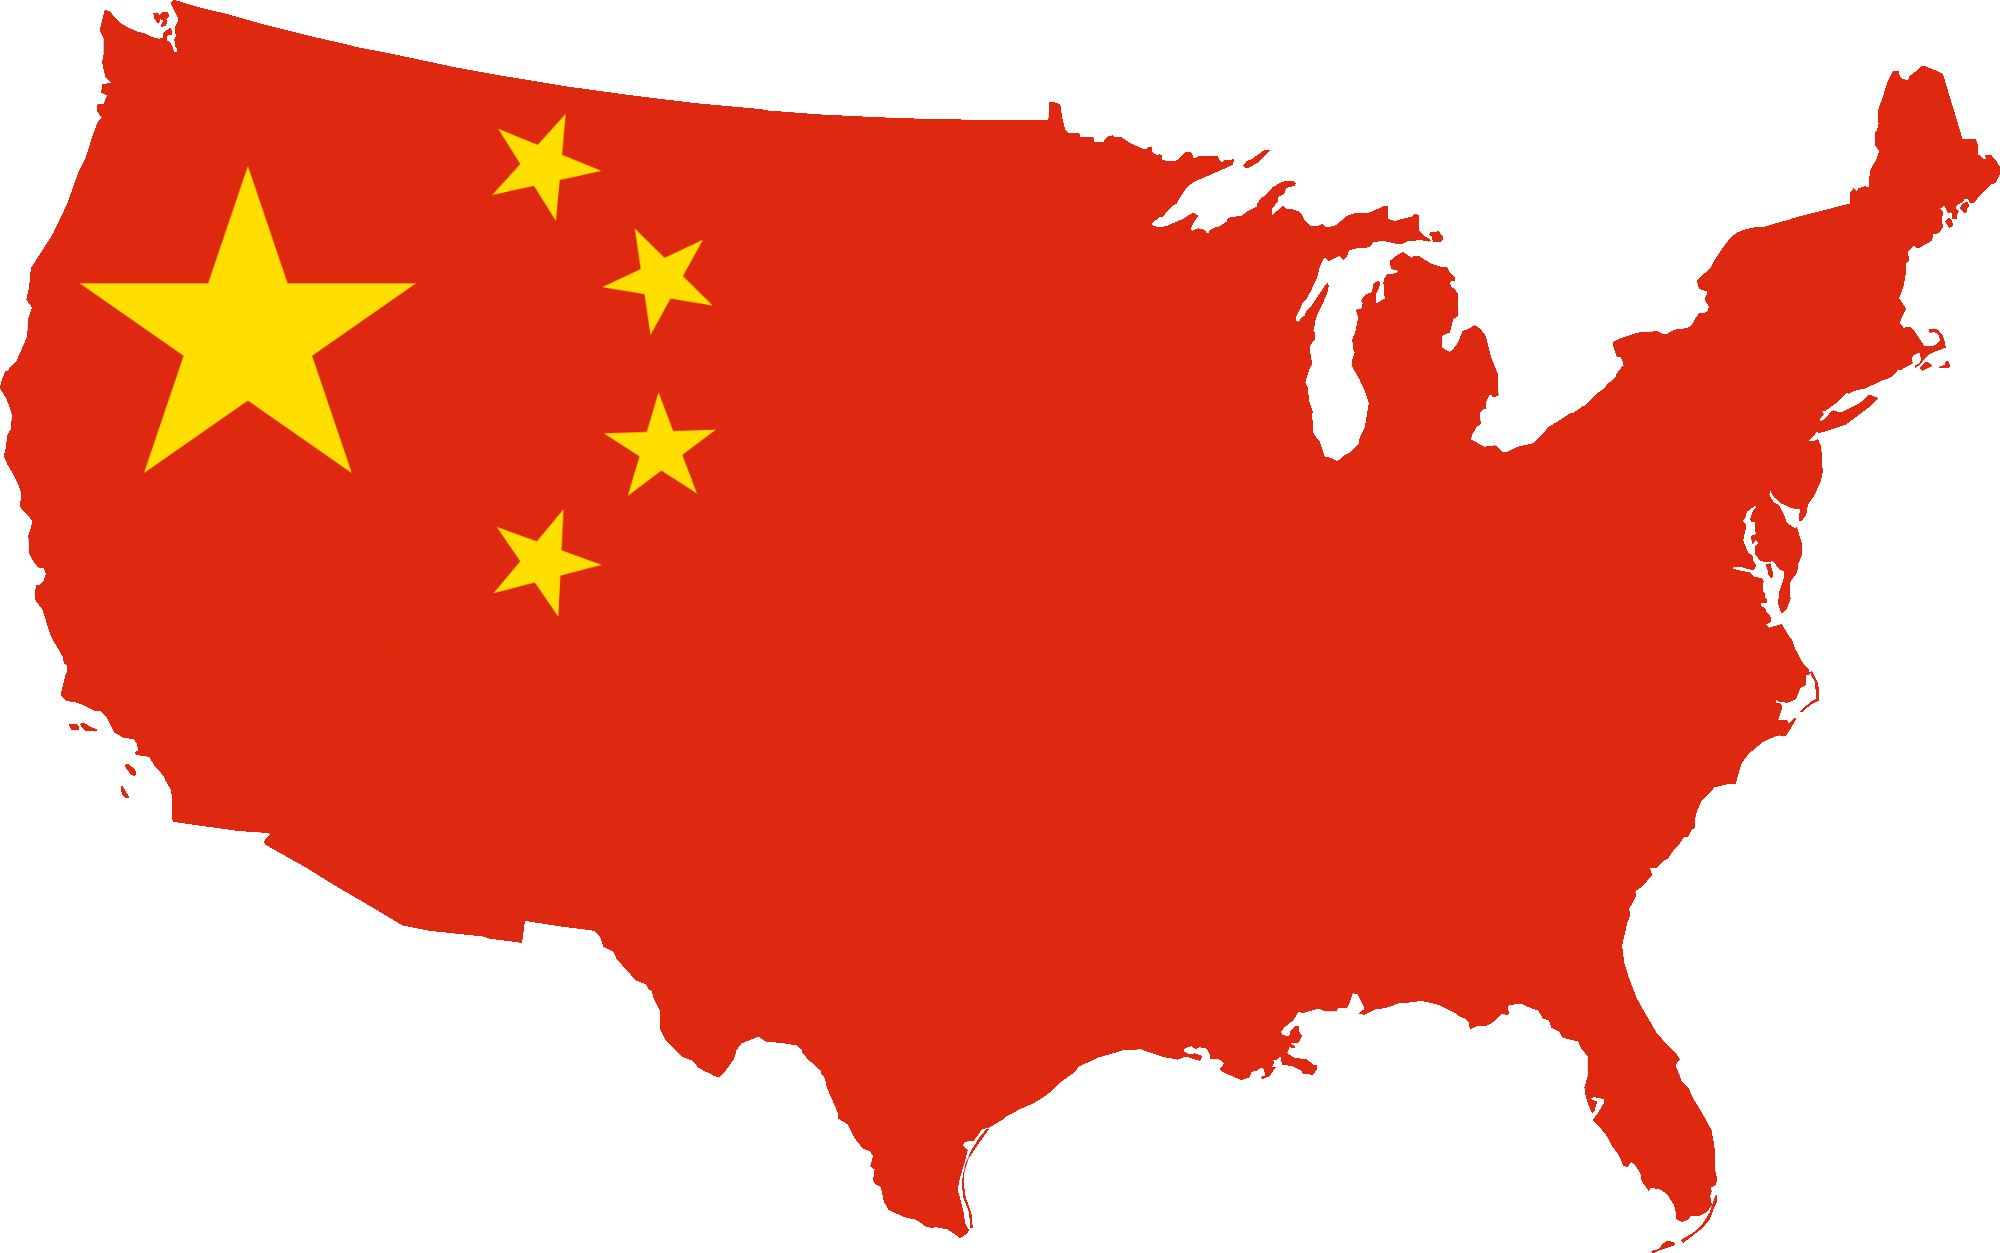 China clipart flag chinese. Png transparent images all